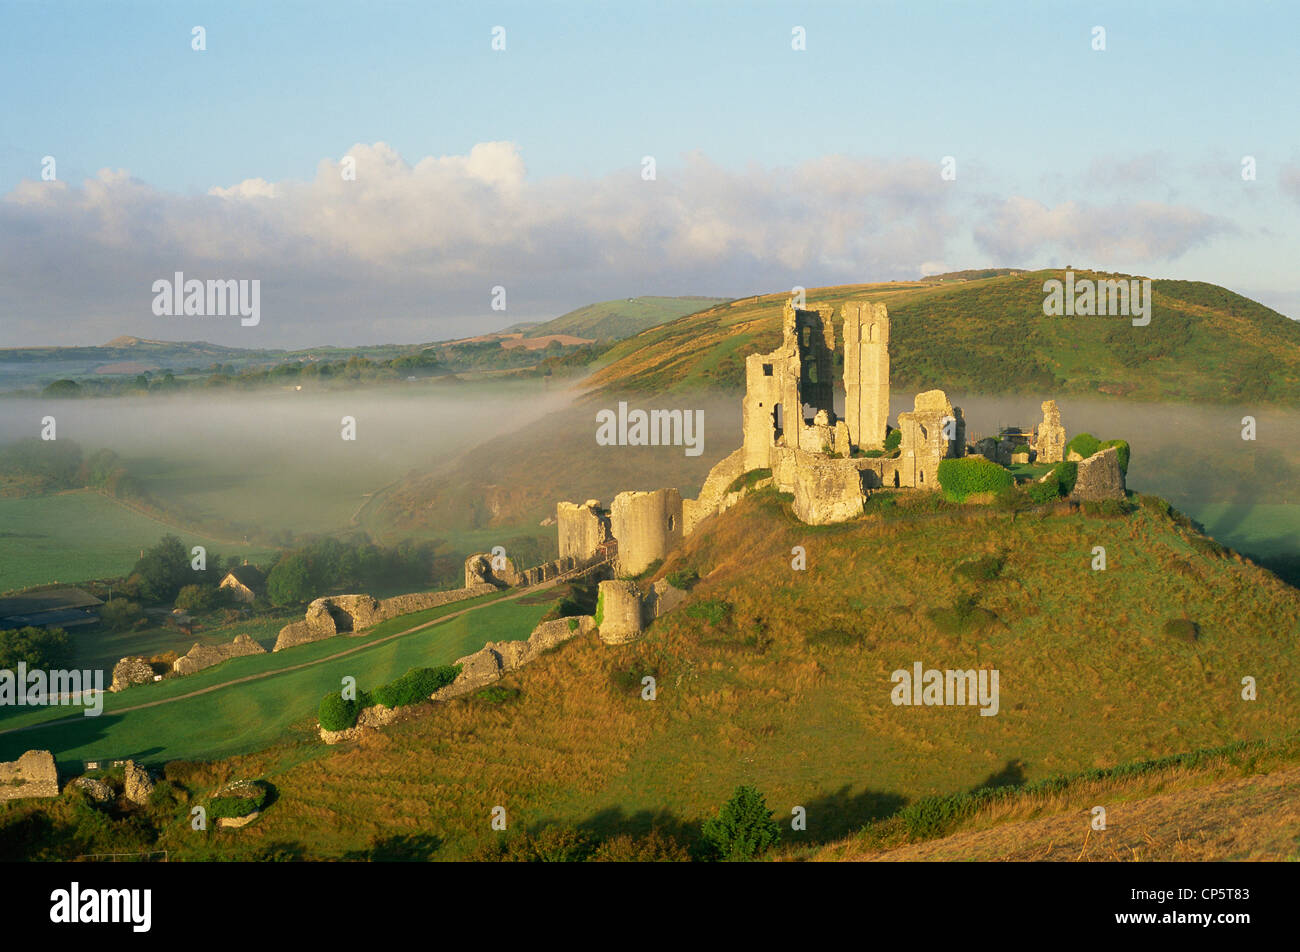 England, Dorset, Corfe Castle surrounded by mist - Stock Image